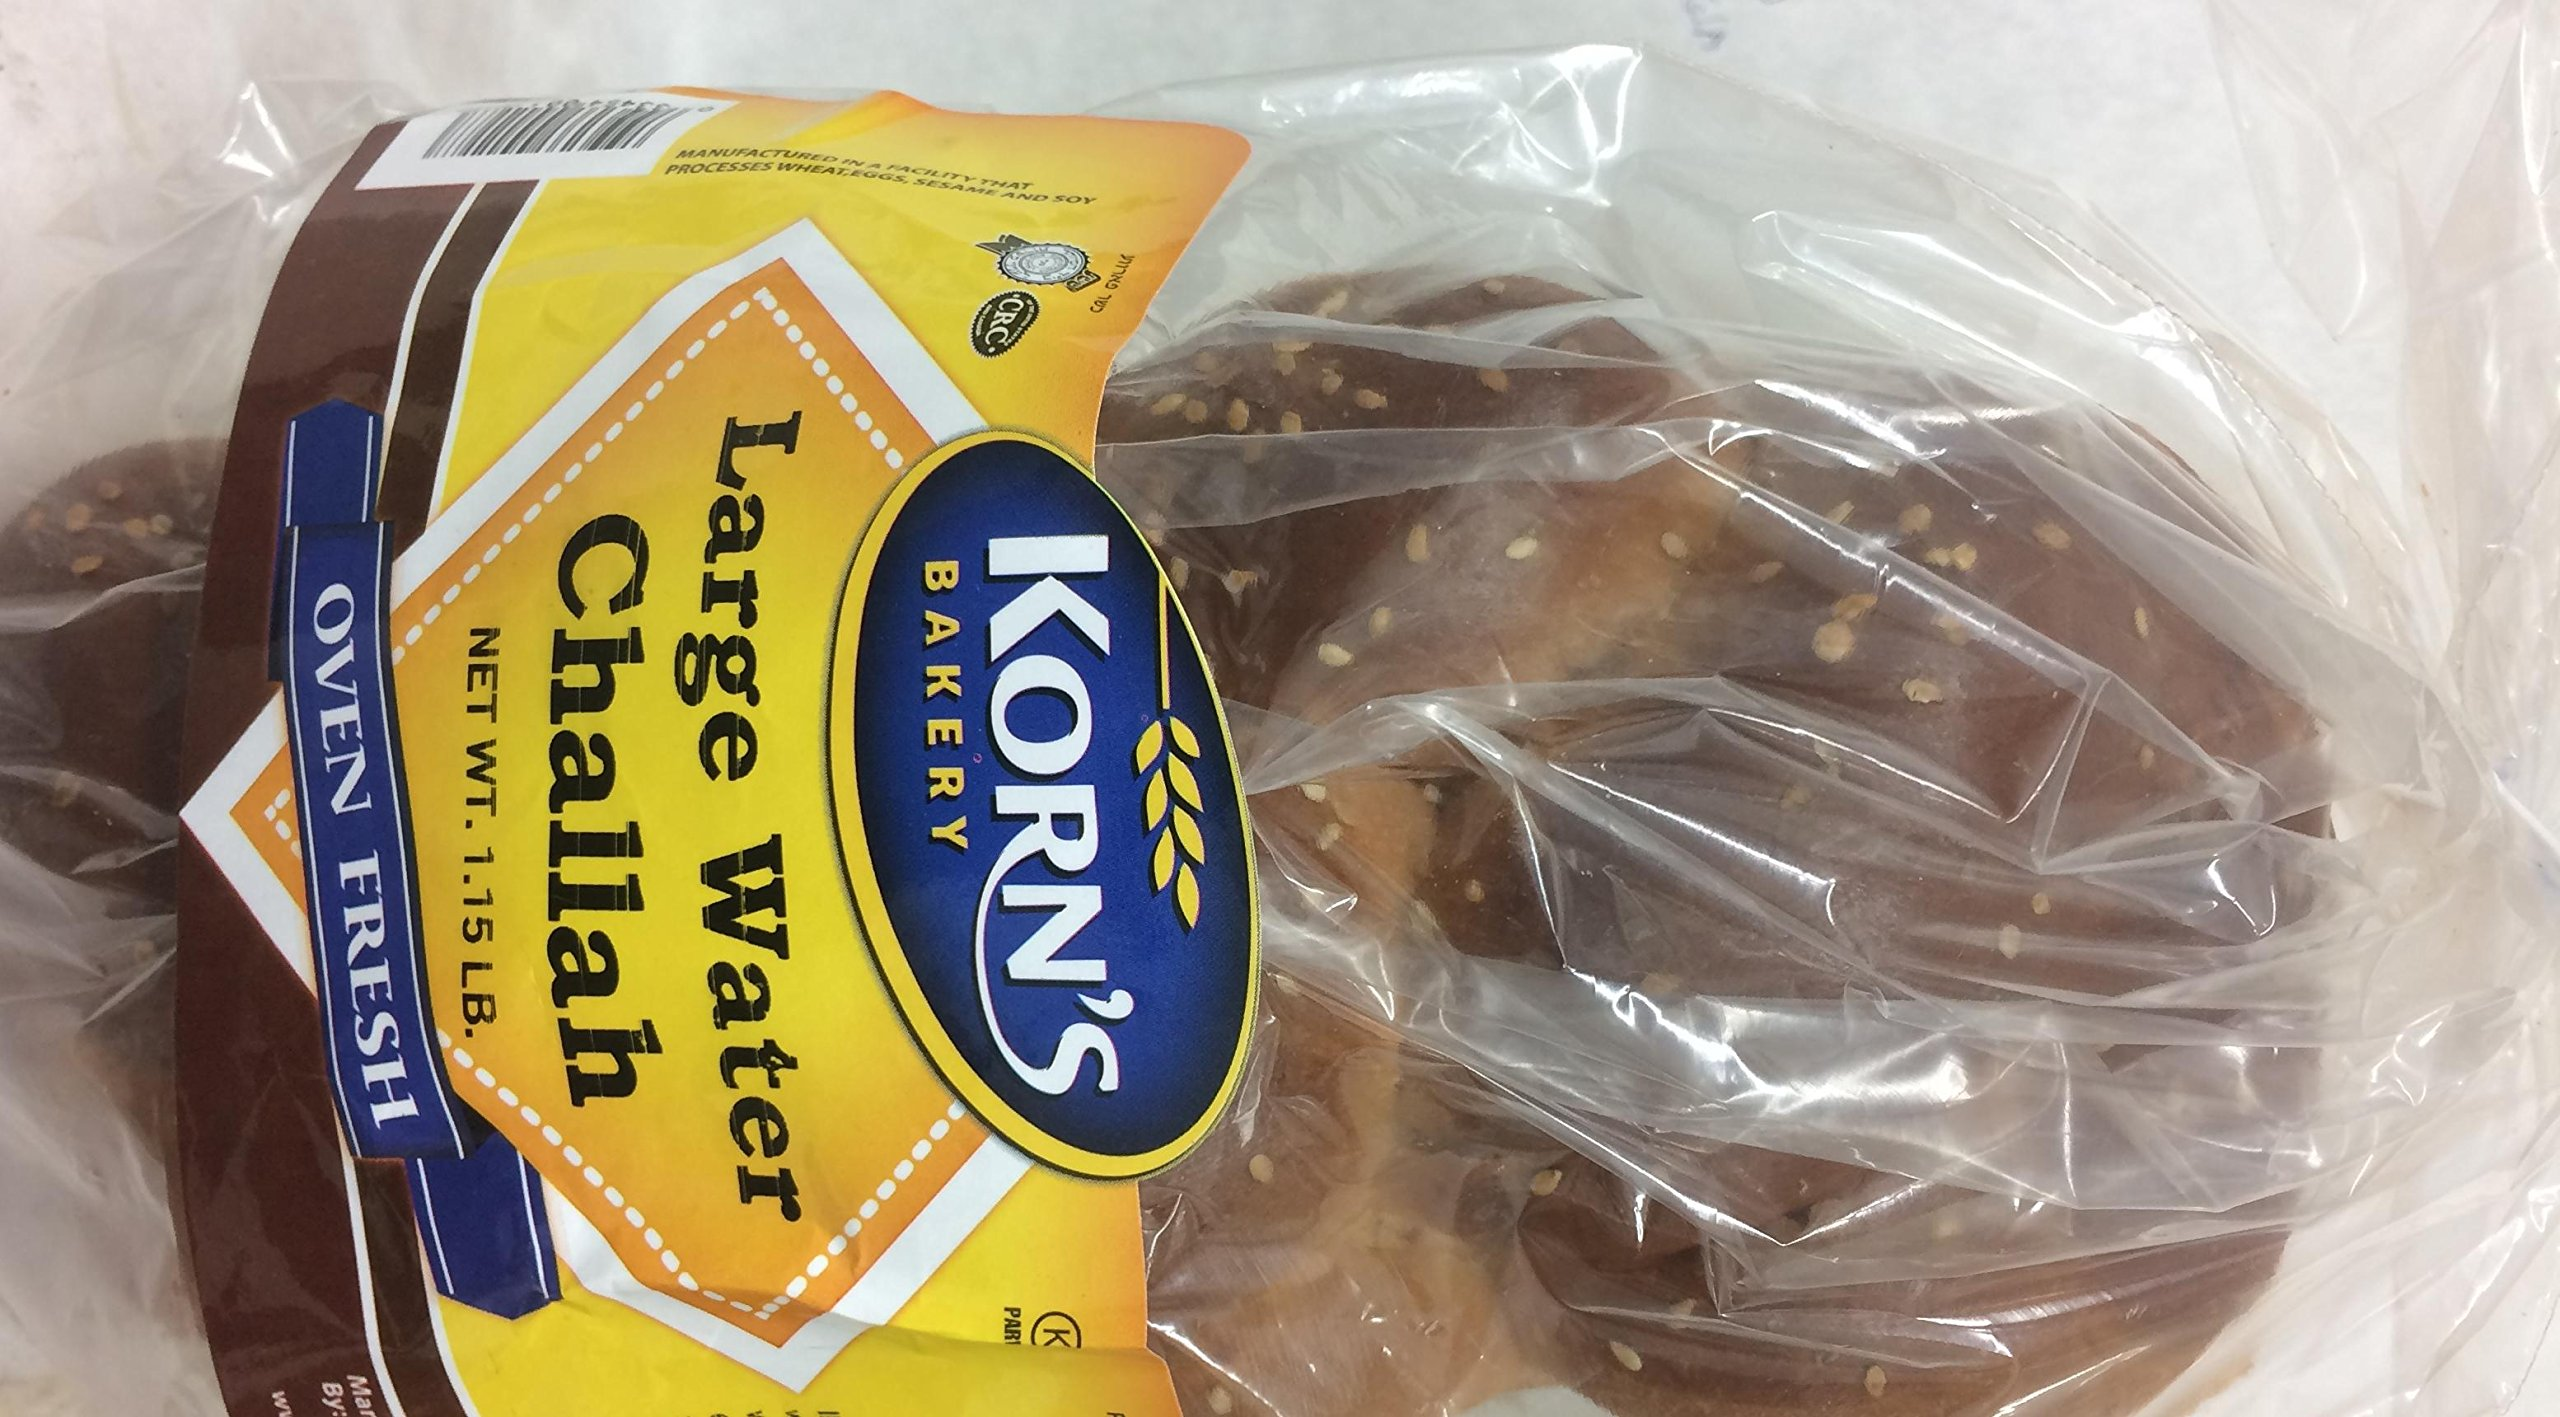 Korn's Large Water Challah 18.4 Oz. Pack Of 1.